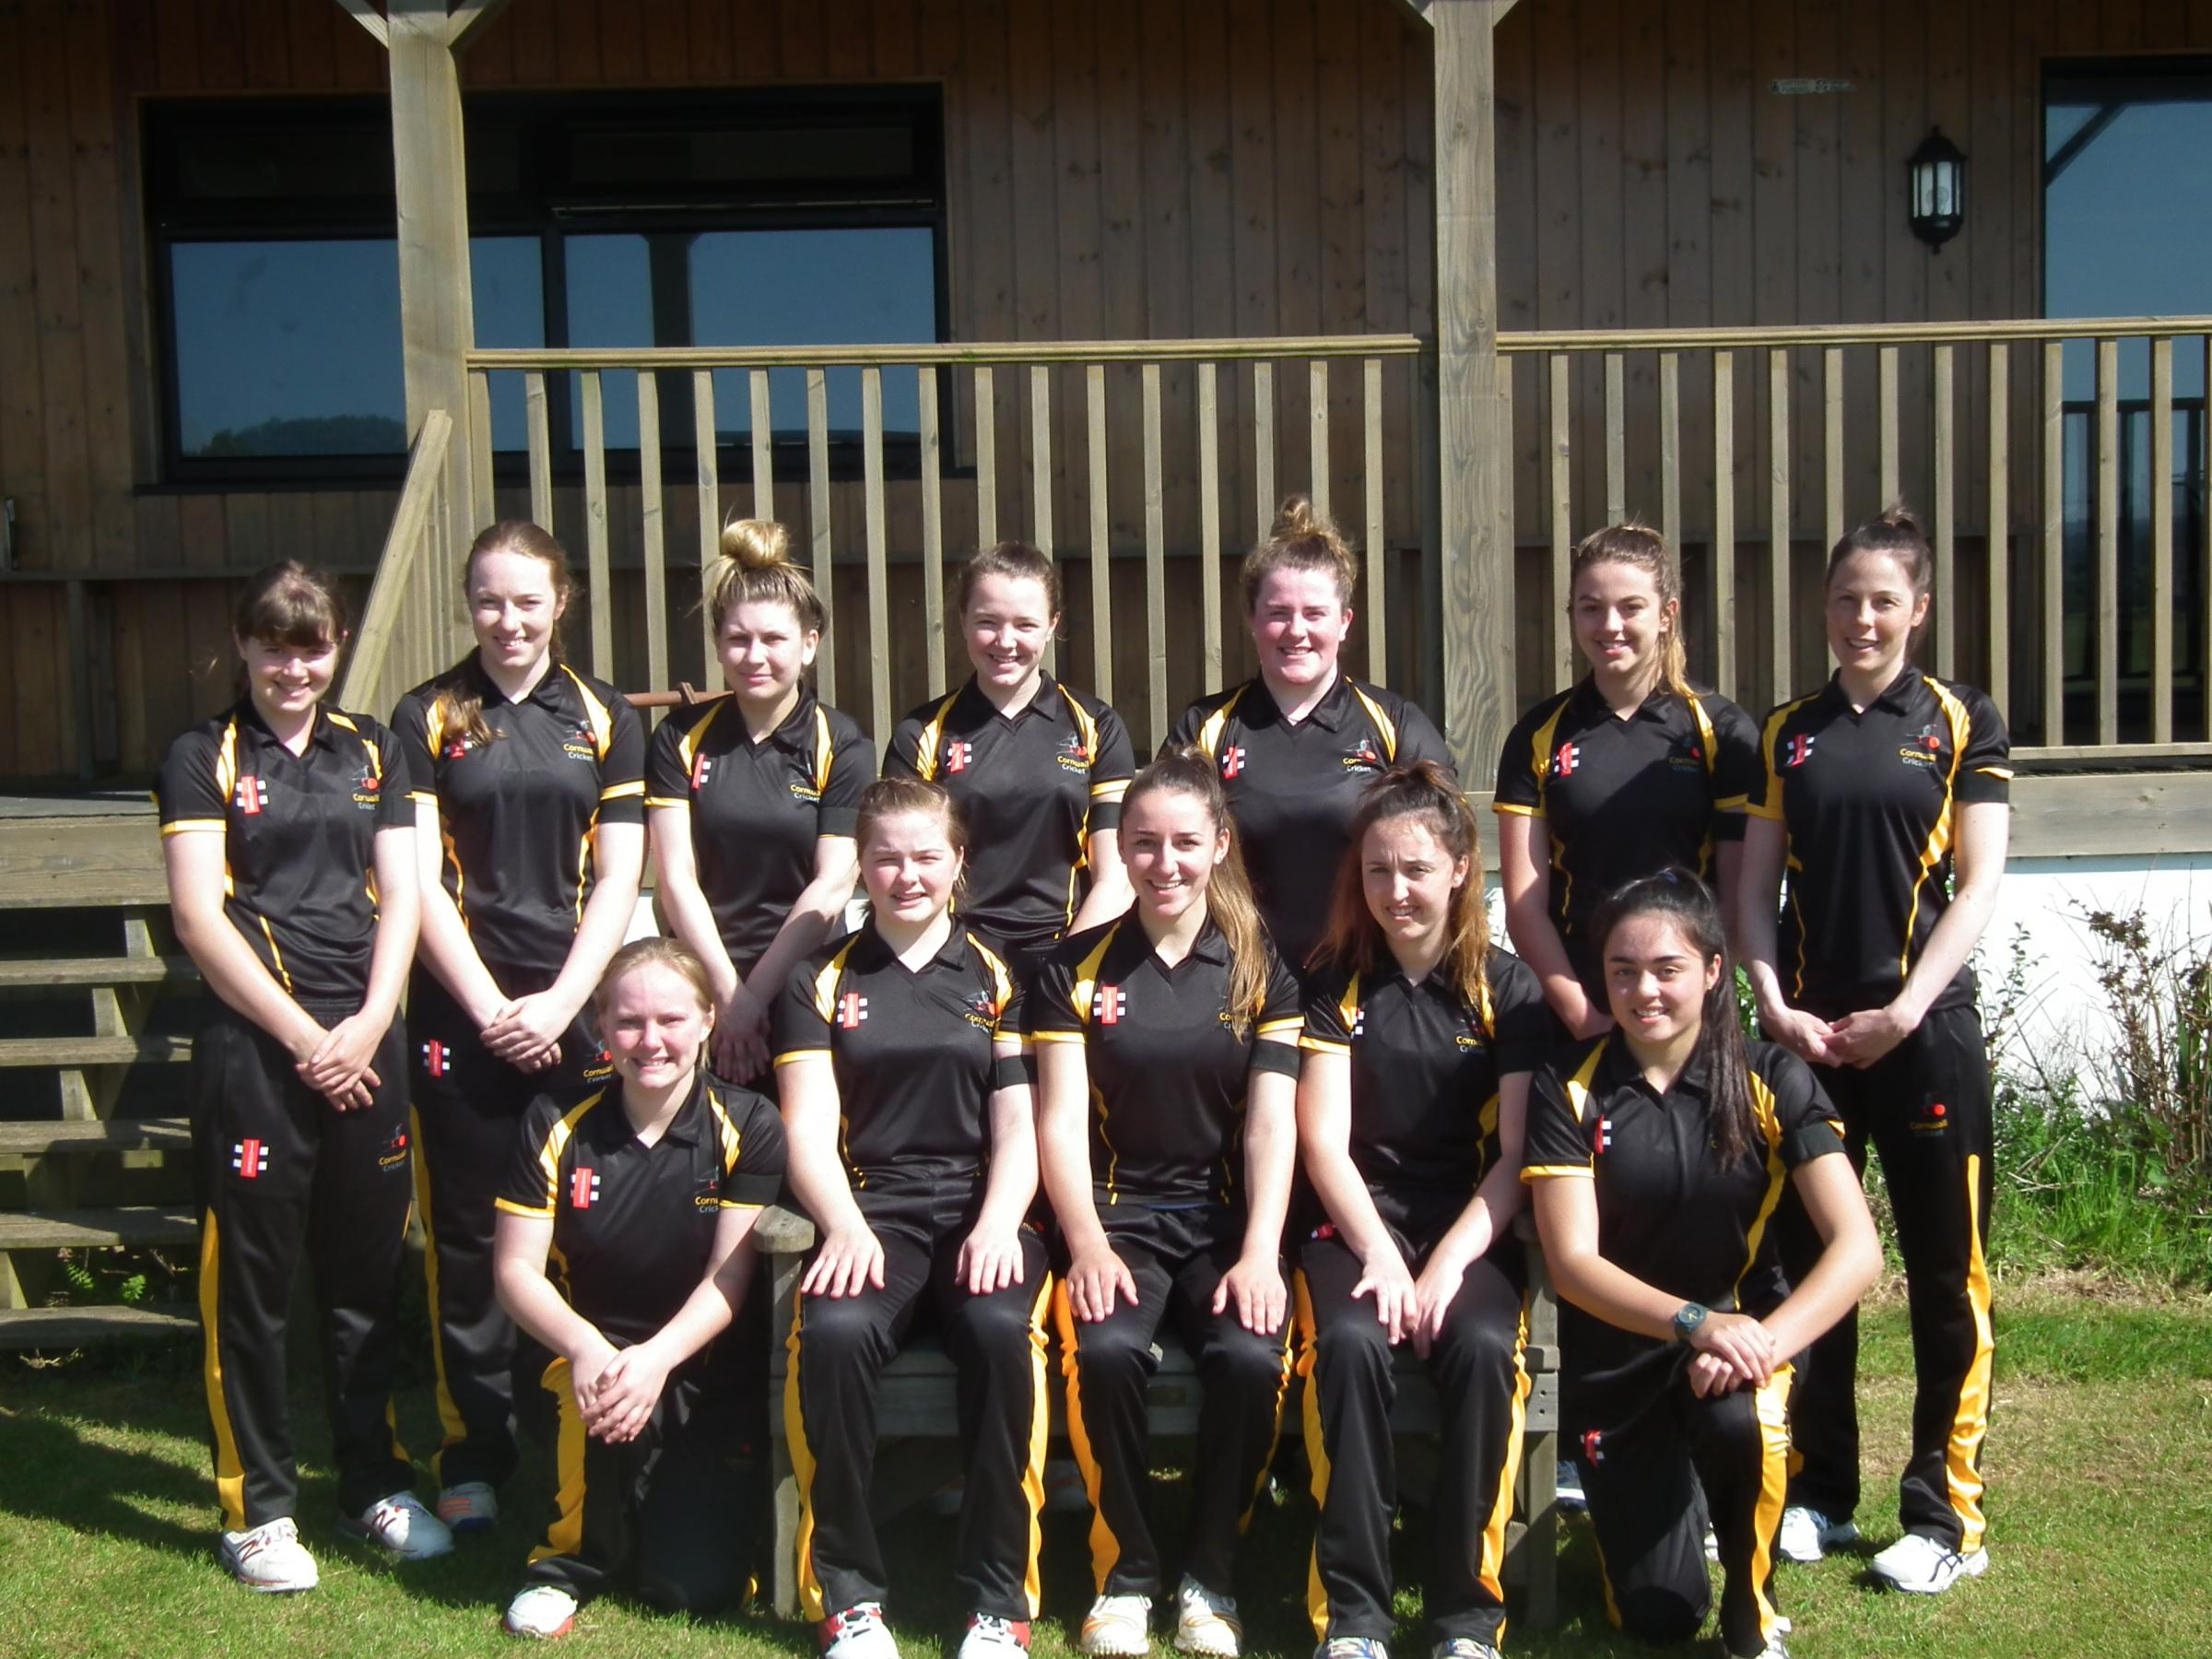 Cornwall Women beat Wiltshire and Dorset over the Bank Holiday weekend to book their place in the County Championship Division 3 promotion play-offs.